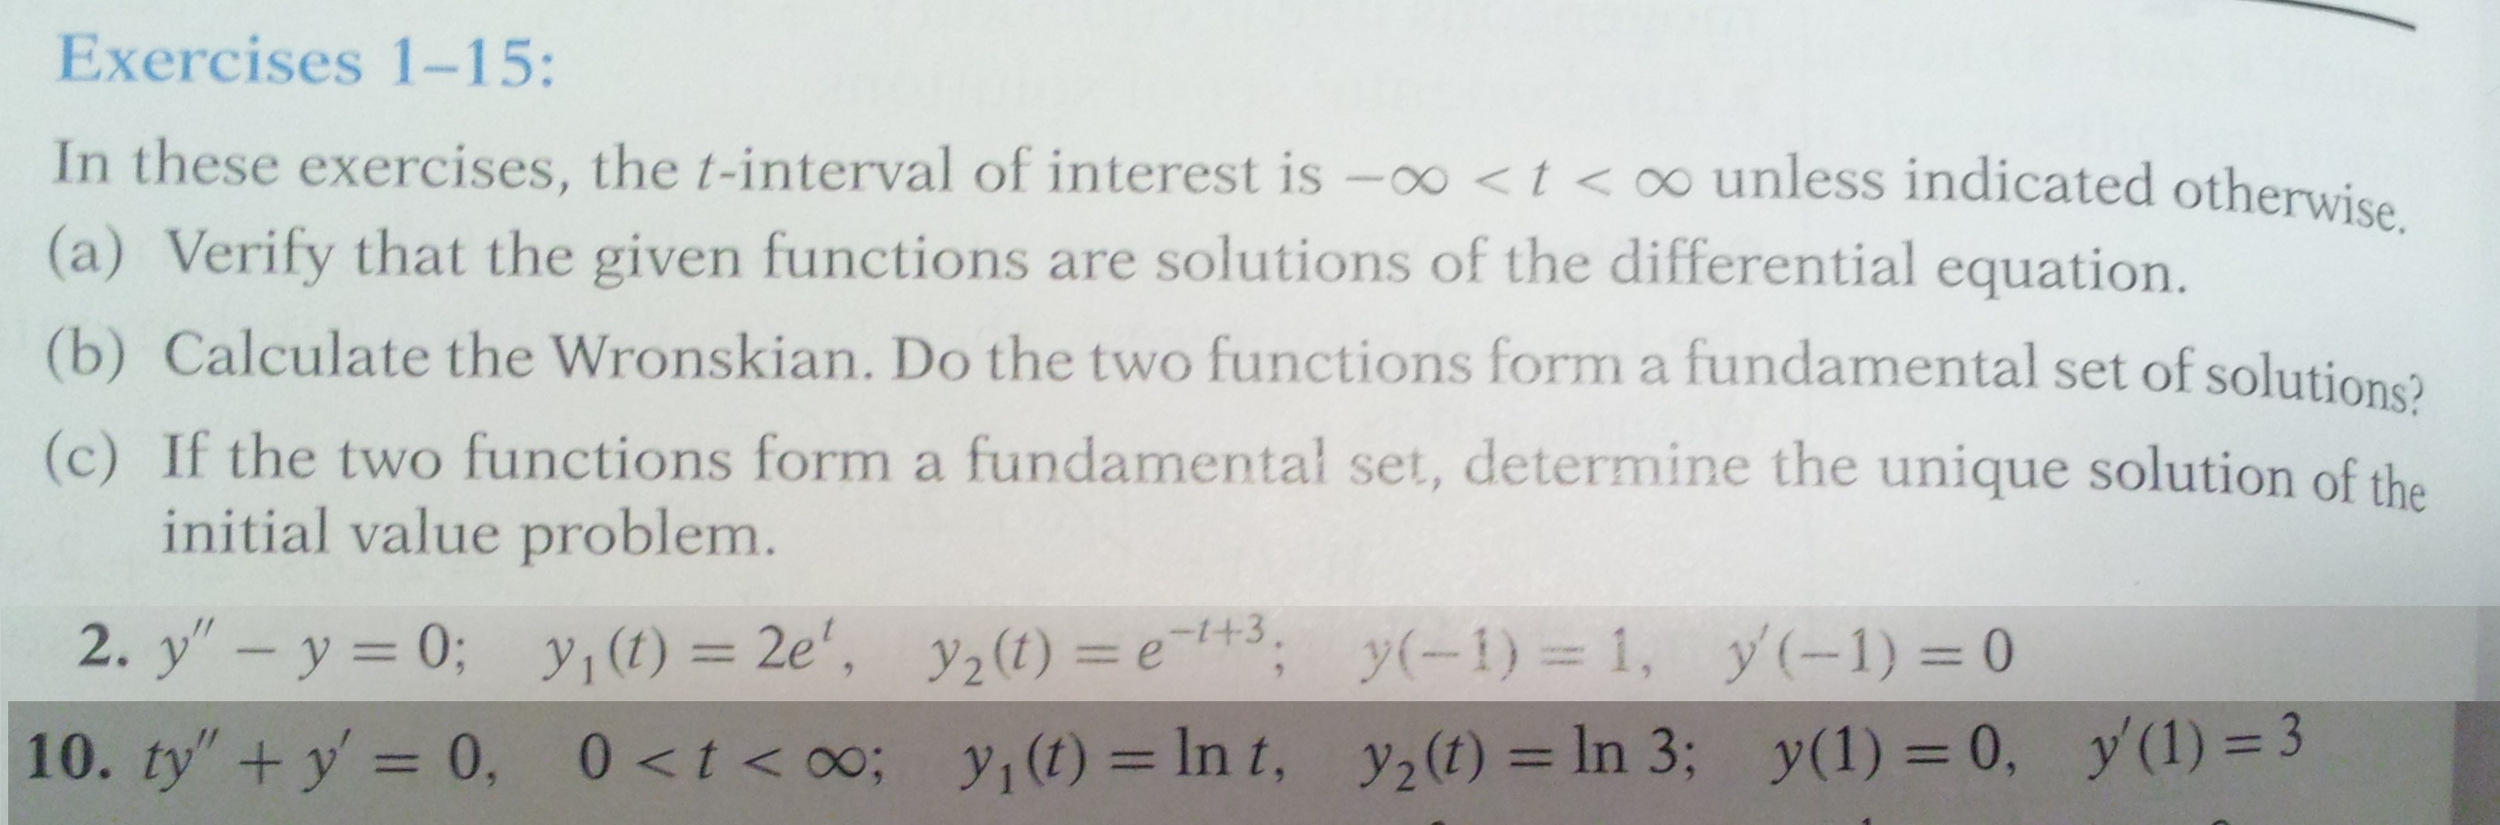 Elementary Differential Equations with Boundary Va